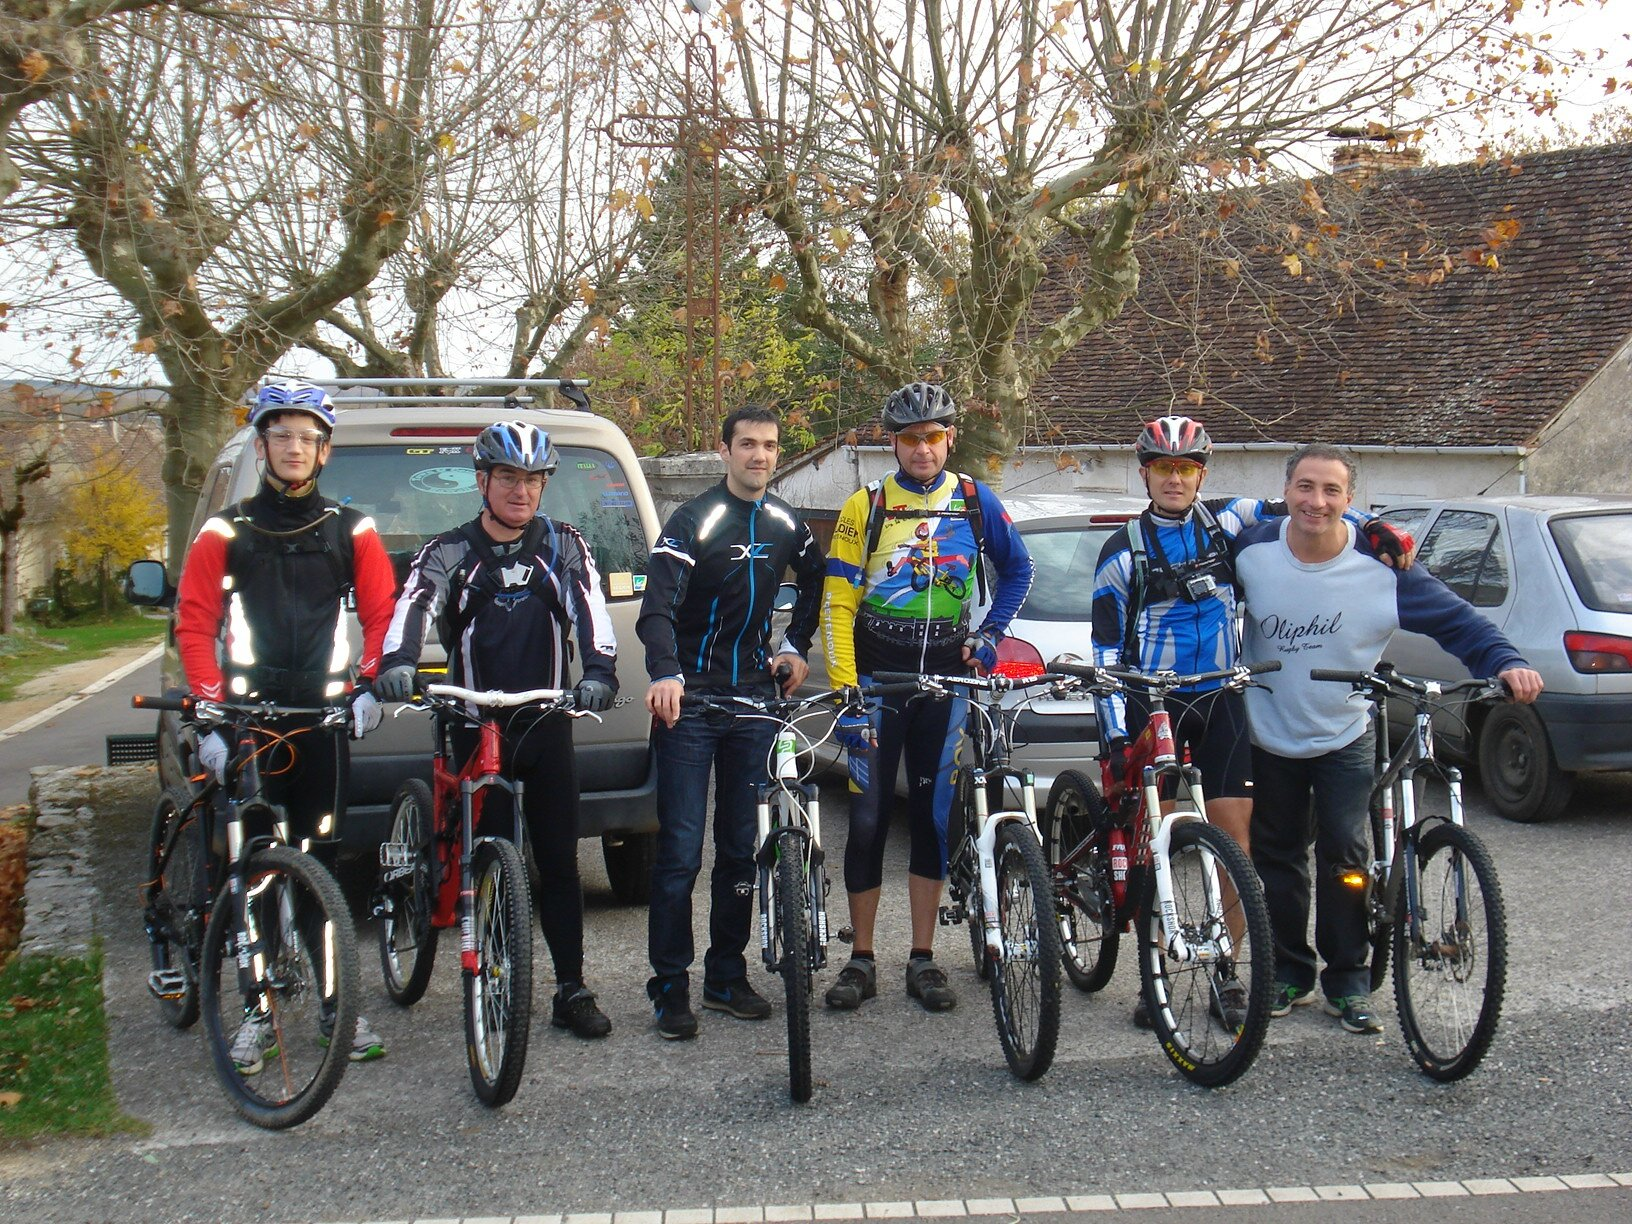 22 / 23-11-2014 Week-end VTT sur le causse de Gramat